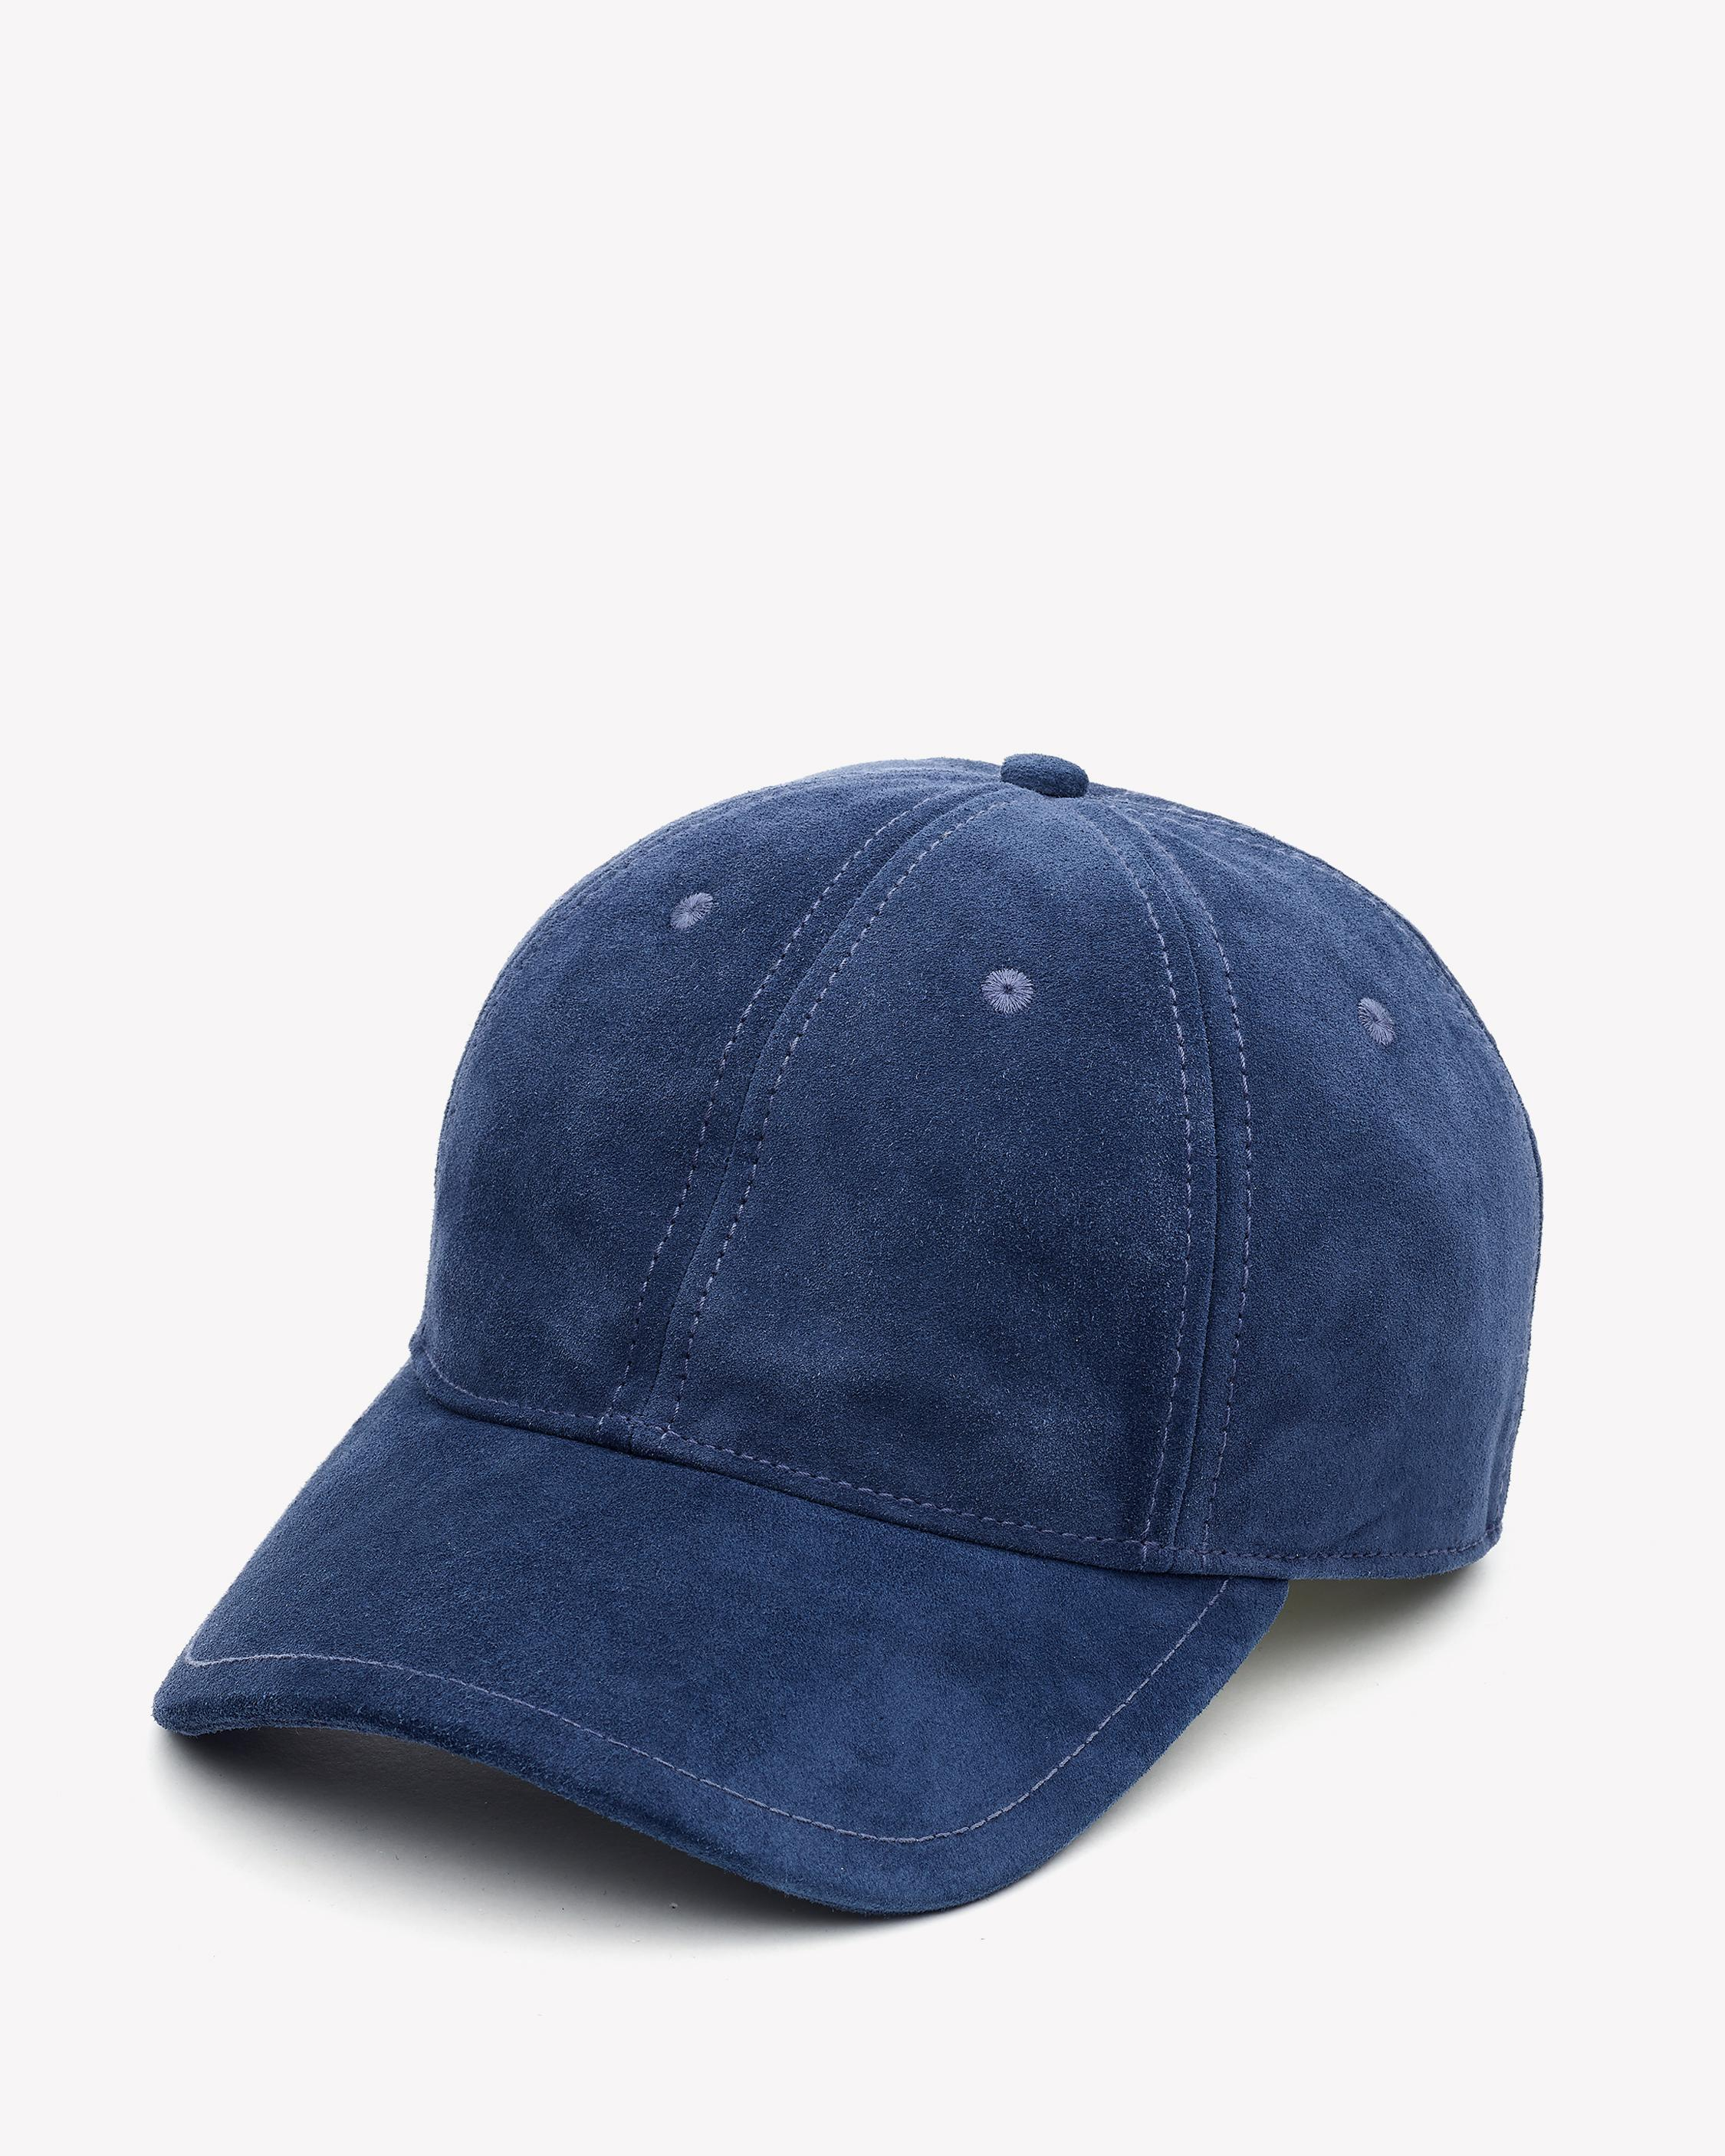 baefbf3b947 Lyst - Rag   Bone Archie Baseball Cap in Blue for Men